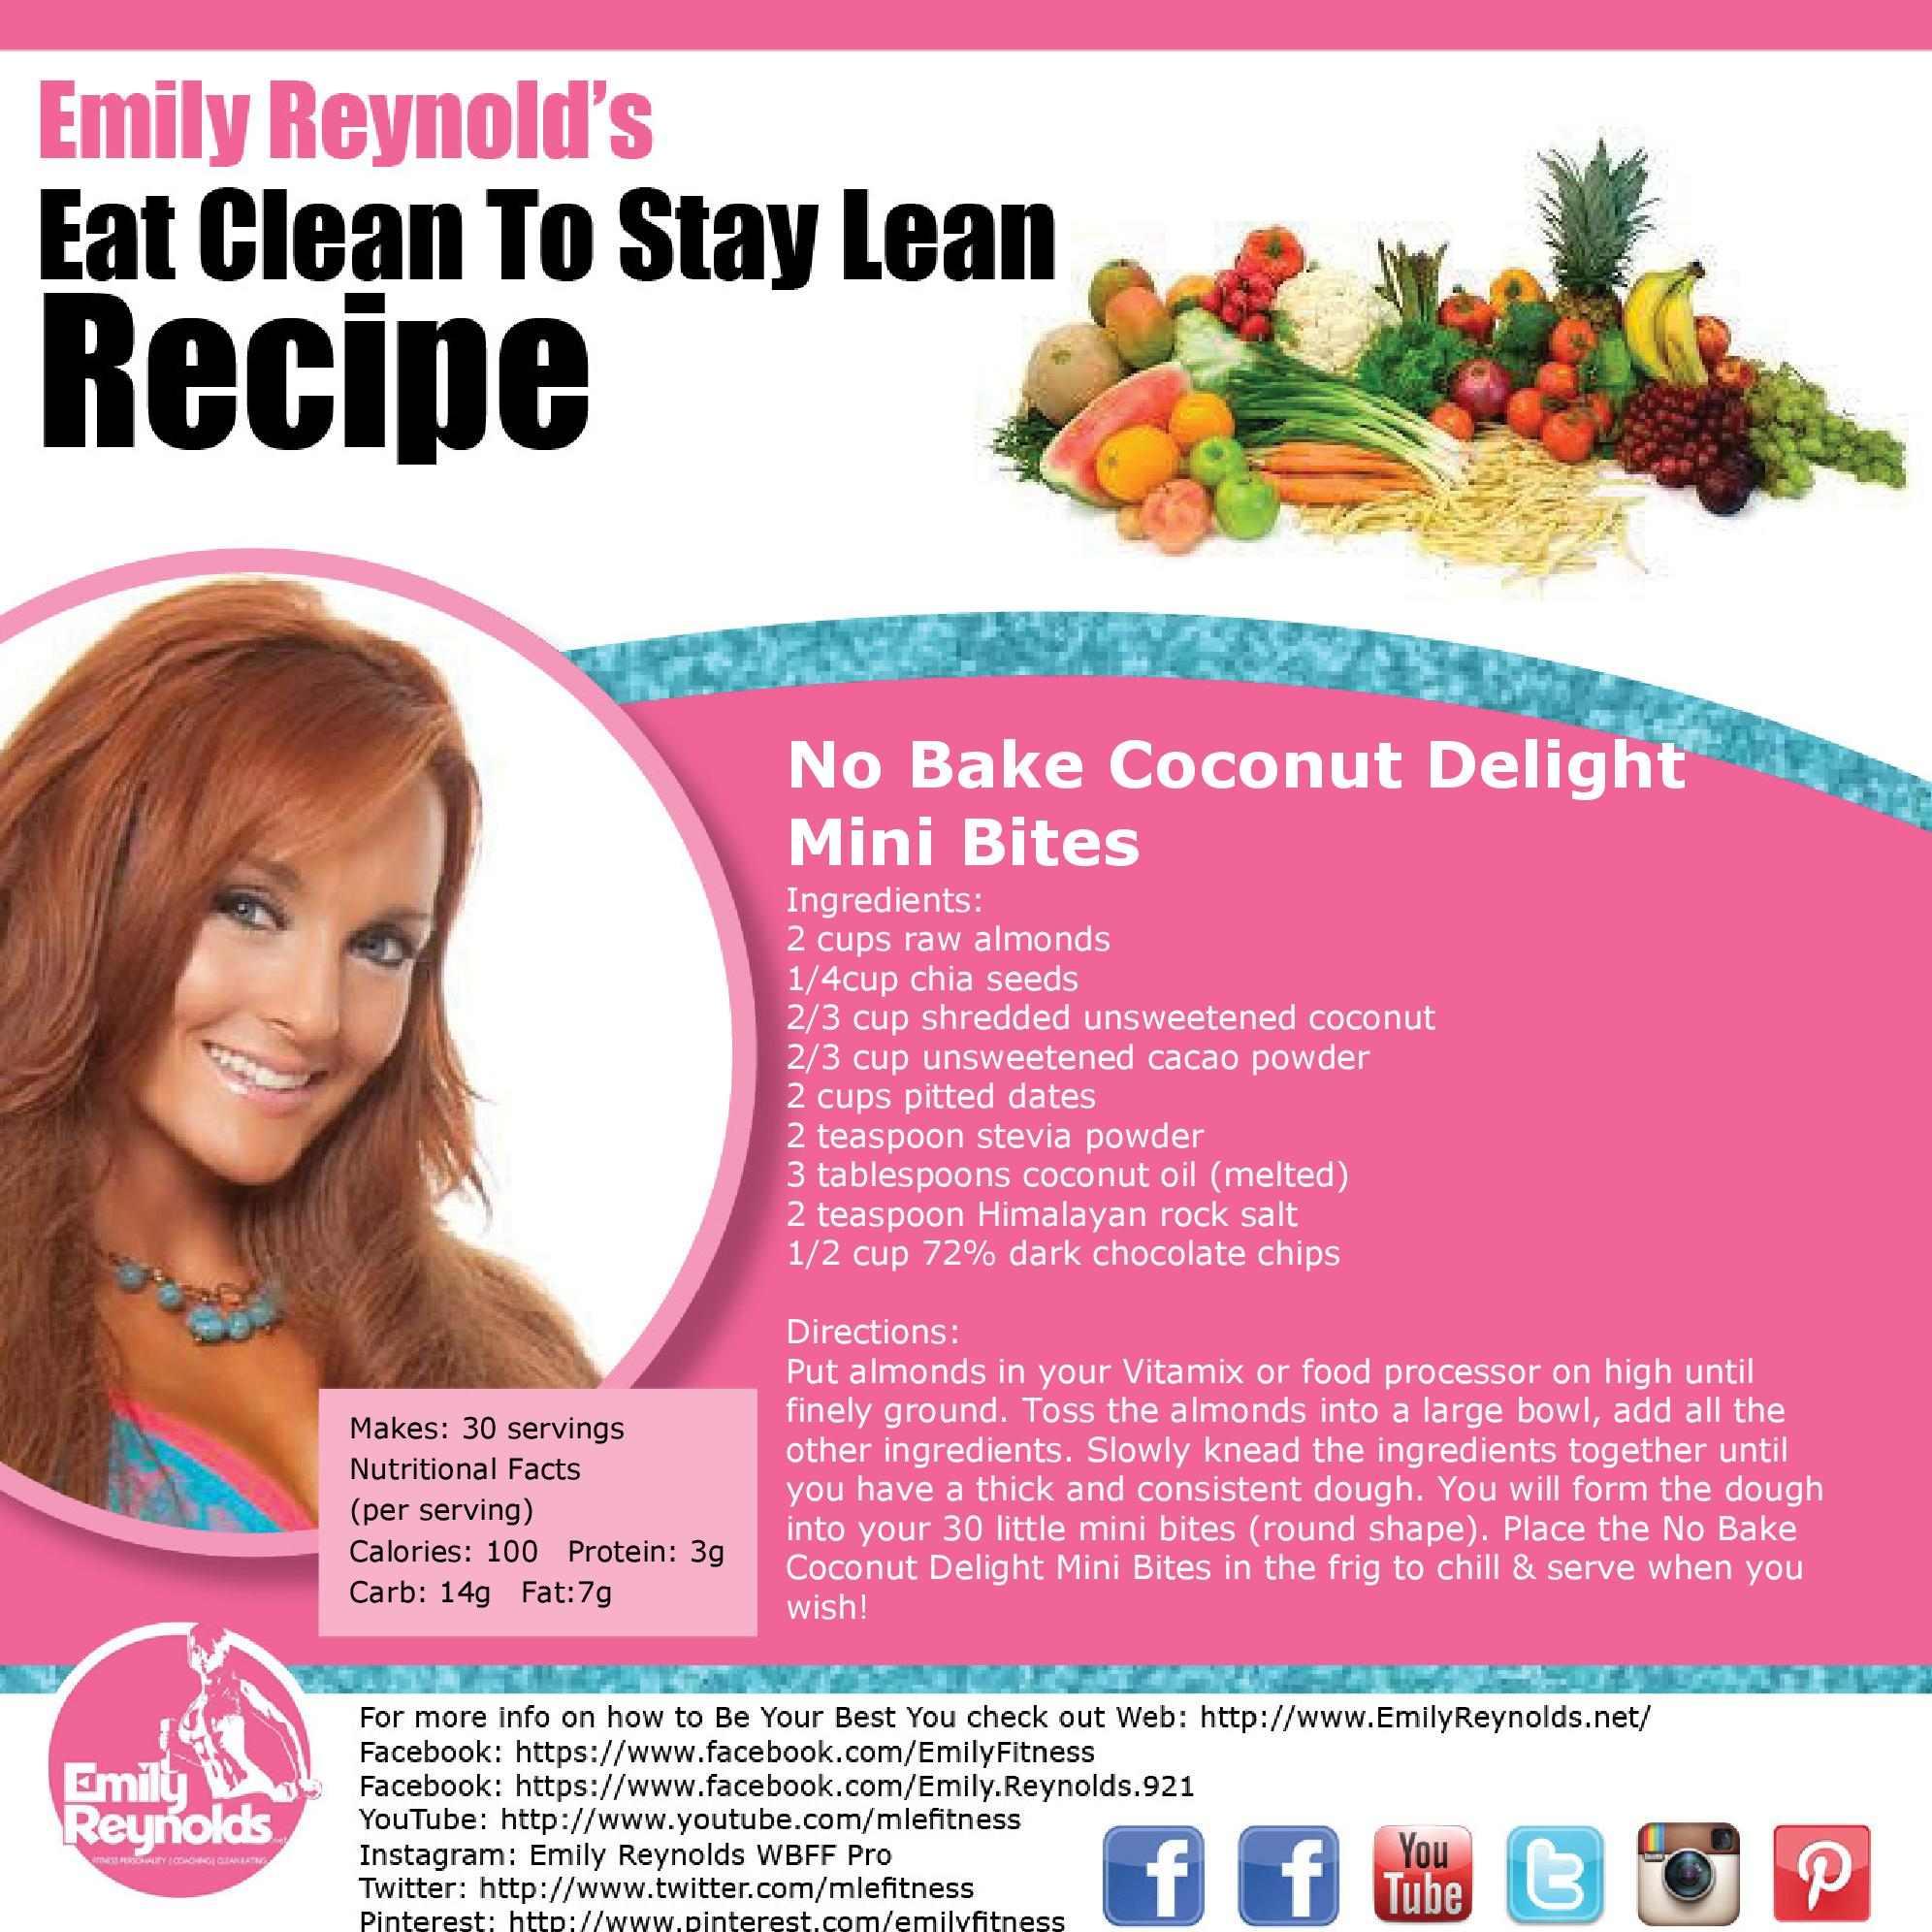 No Bake Coconut Delight Mini Bites (March 2014 newsletter)-page-001.jpg